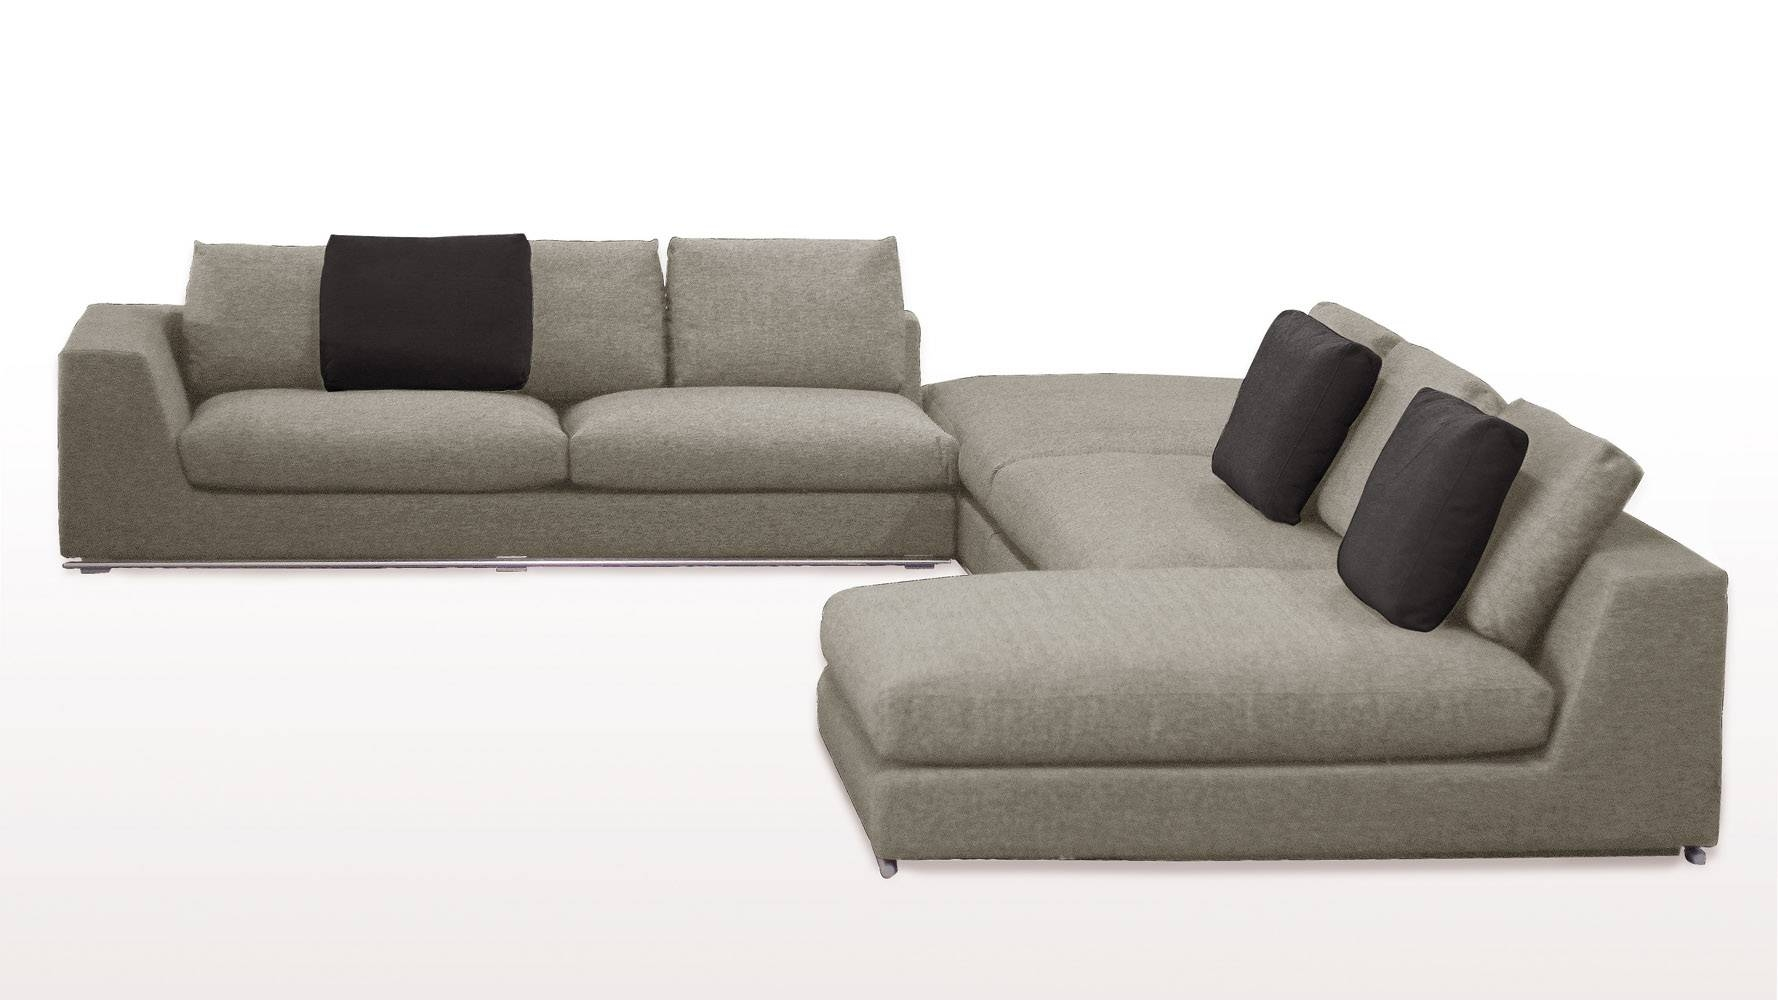 Comodo Sectional Sofa With Ottoman - Grey | Zuri Furniture throughout Sofa With Chaise and Ottoman (Image 9 of 30)